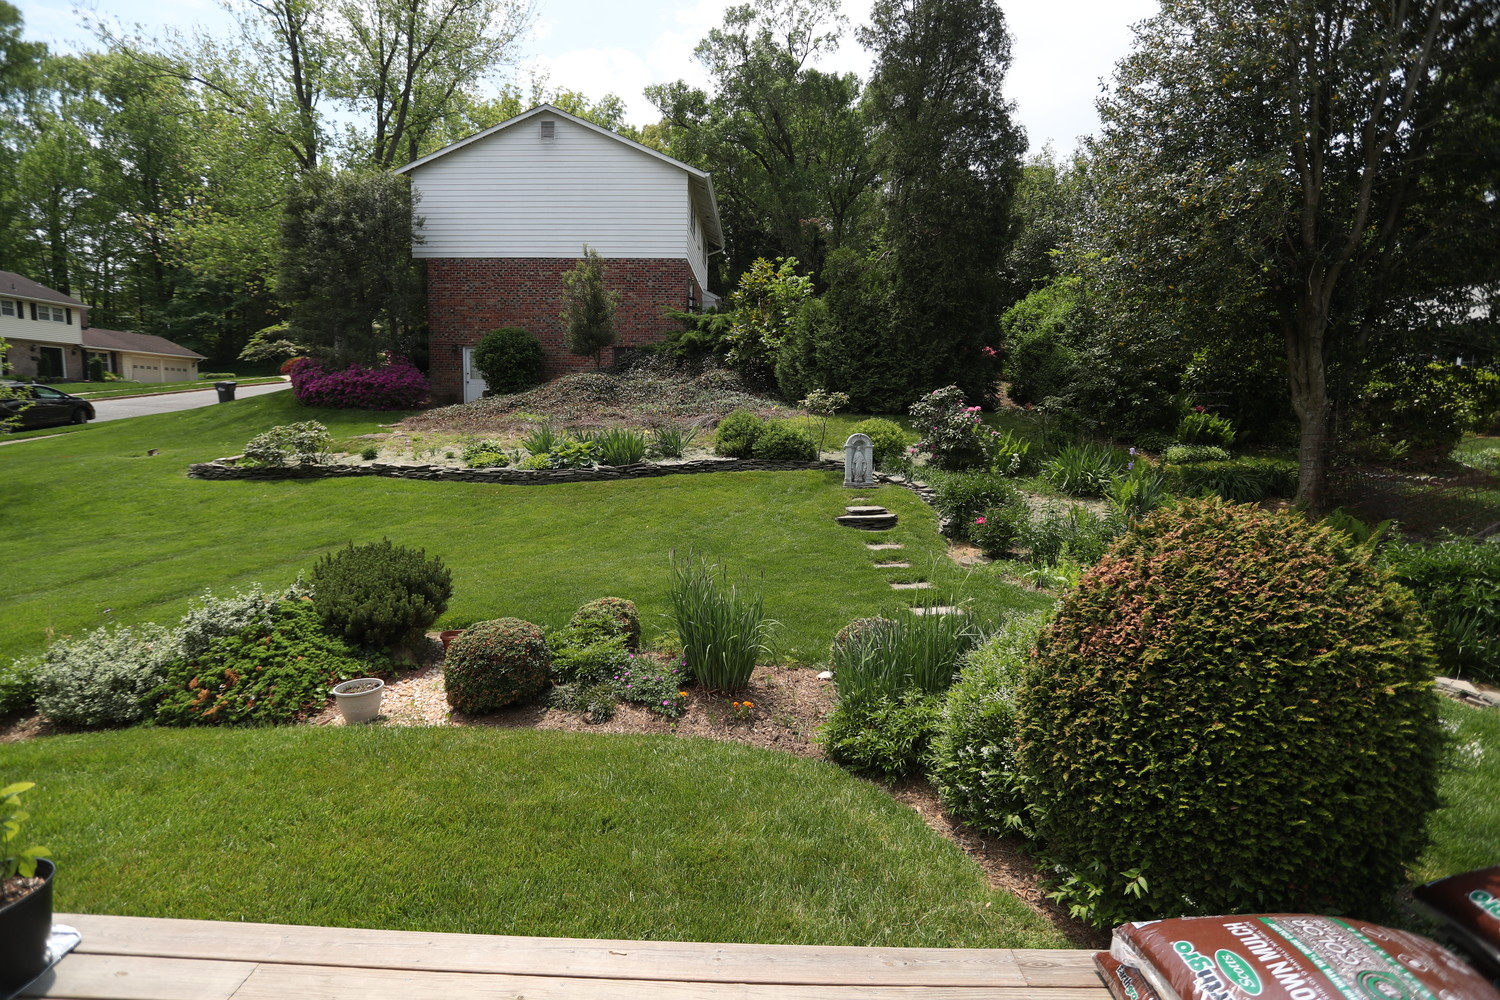 Single family home close to Northern Virginia Community College